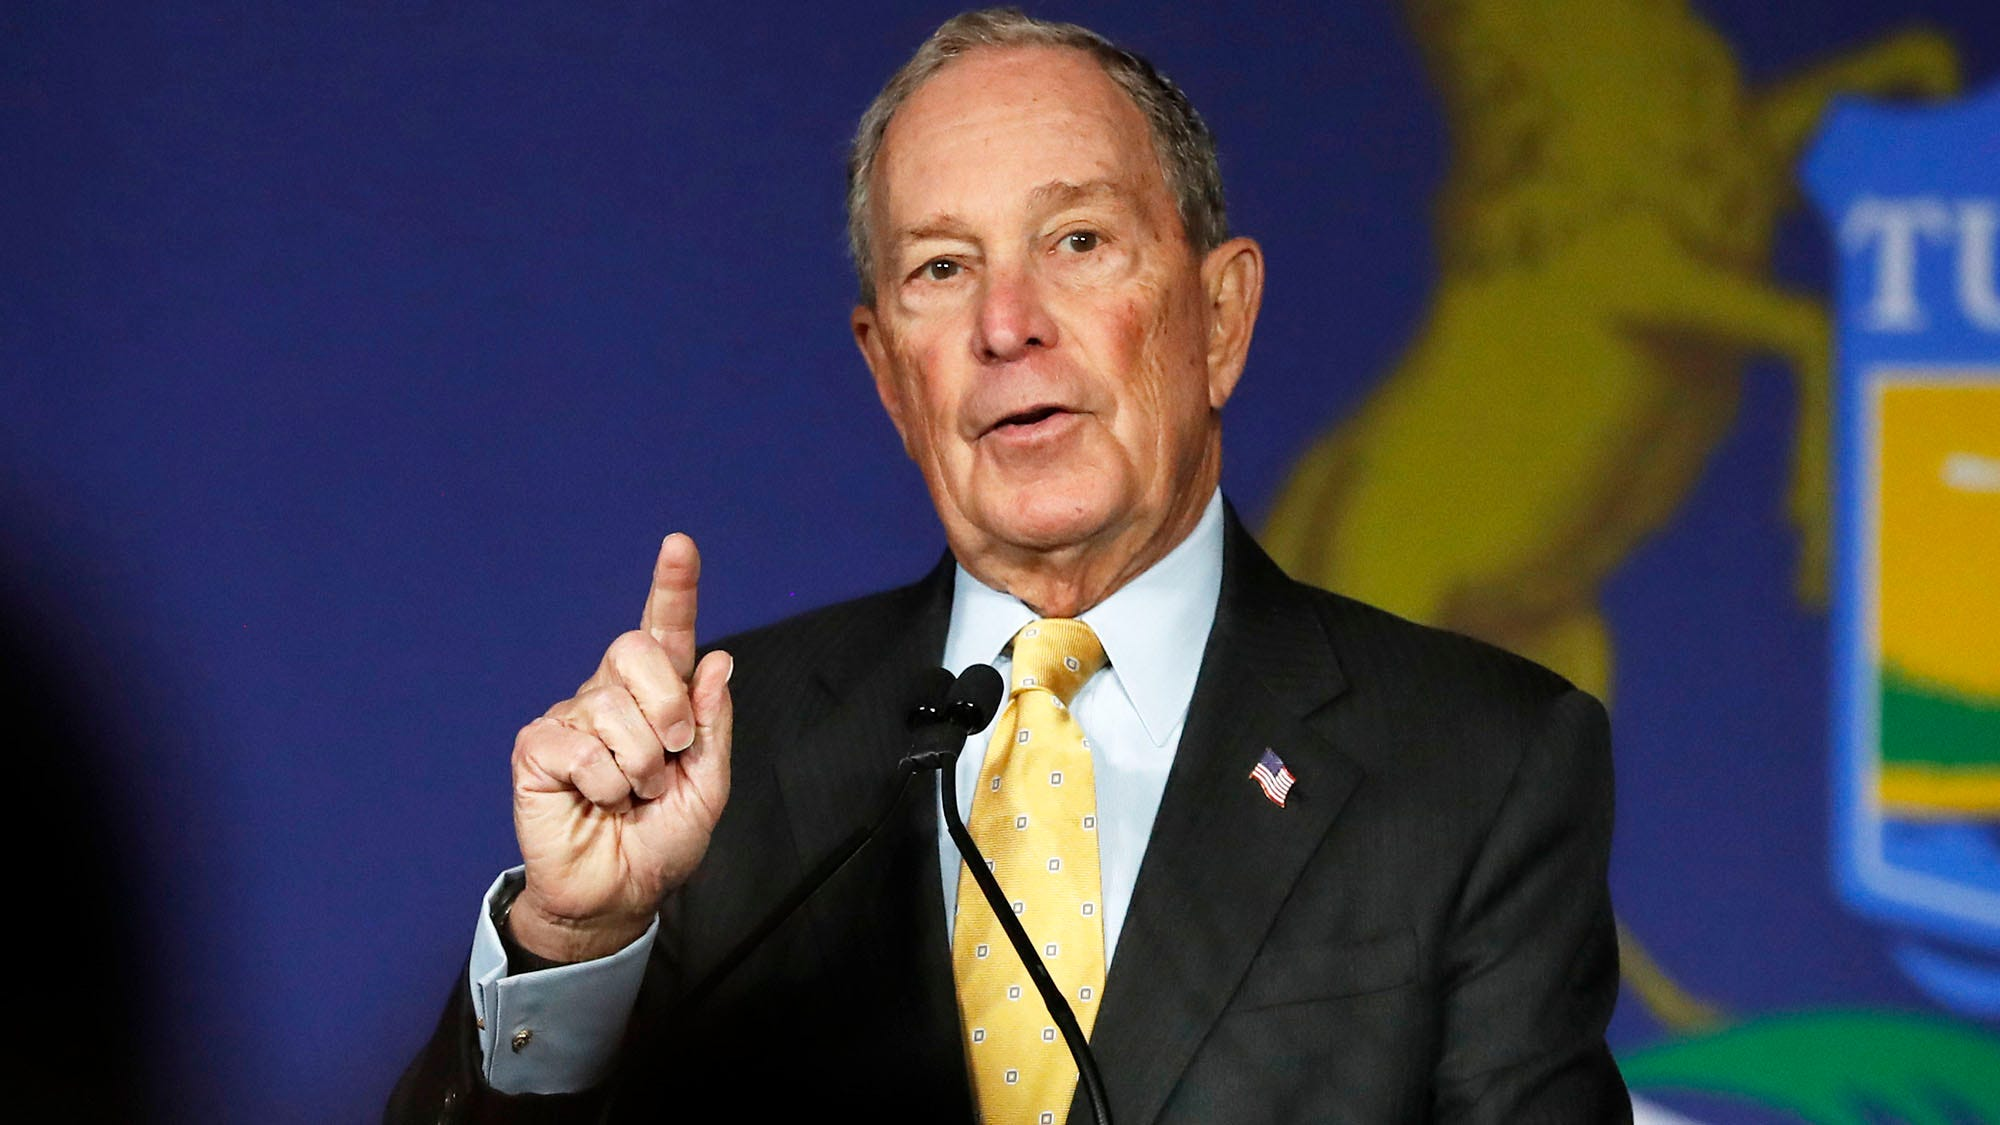 Bloomberg unveils Social Security, retirement plan